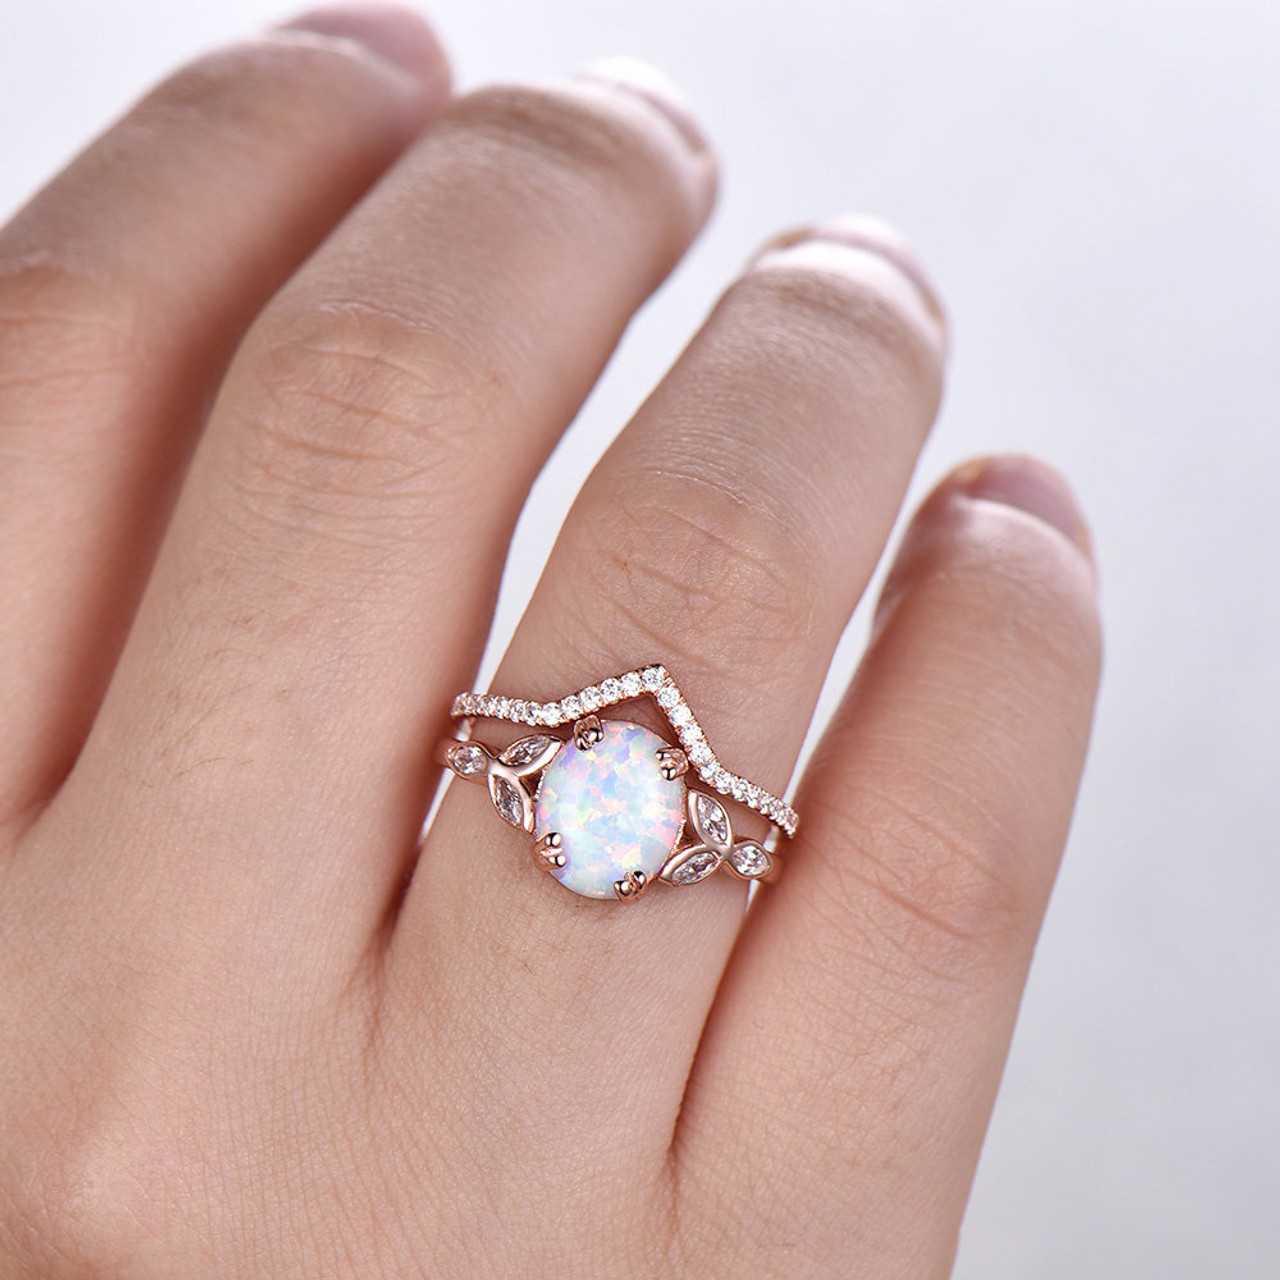 White Opal Ring Oval White Fire Opal Silver Art Deco Simulated Diamond Engagement Ring Vintage Design Sterling Silver halo Wedding Ring